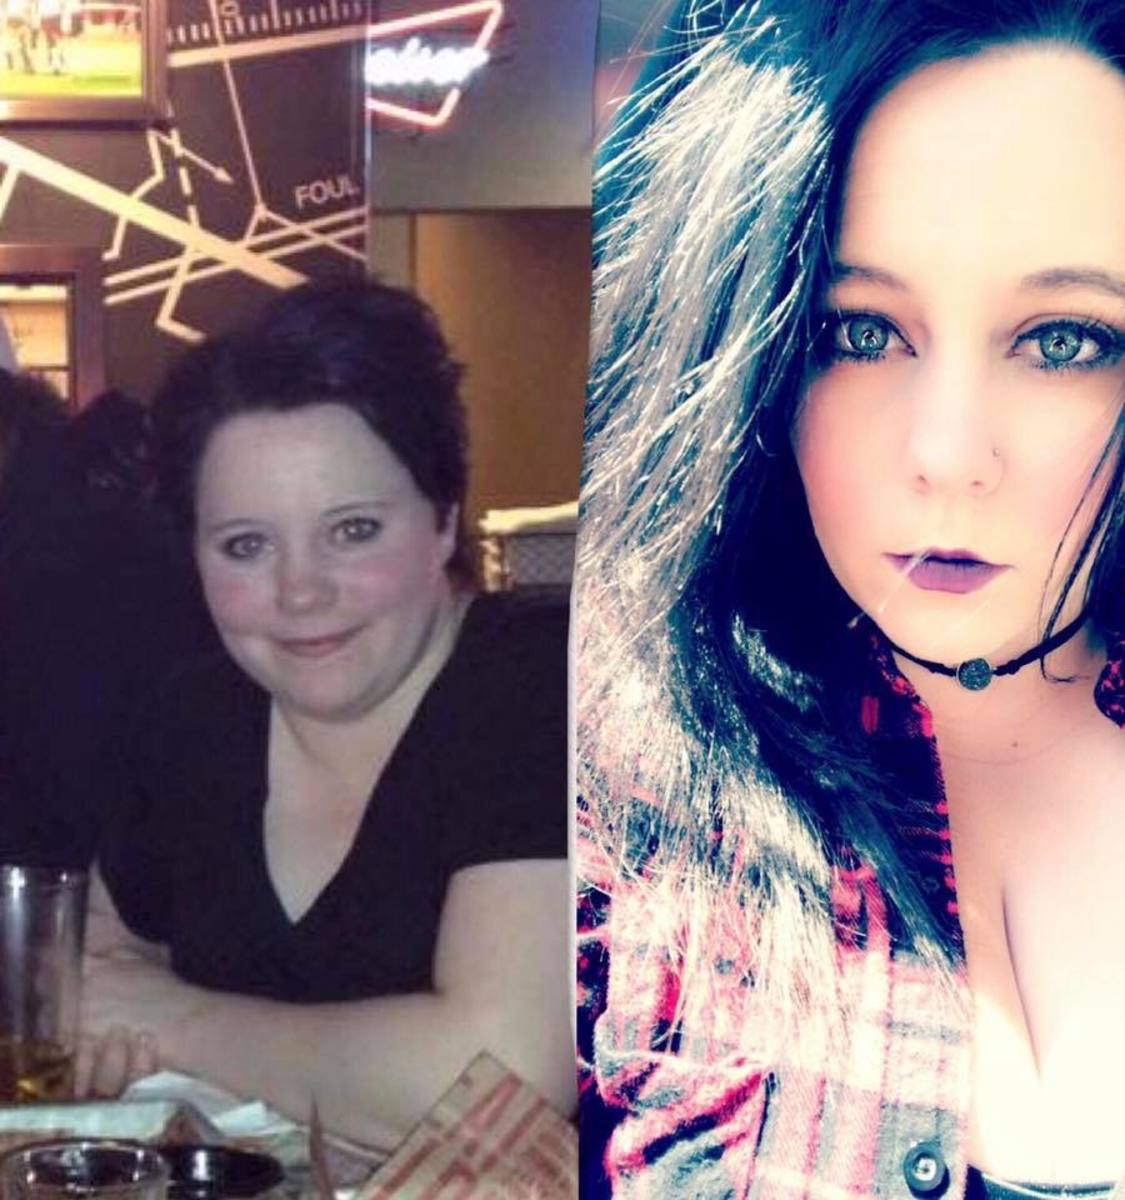 Me, before and after.